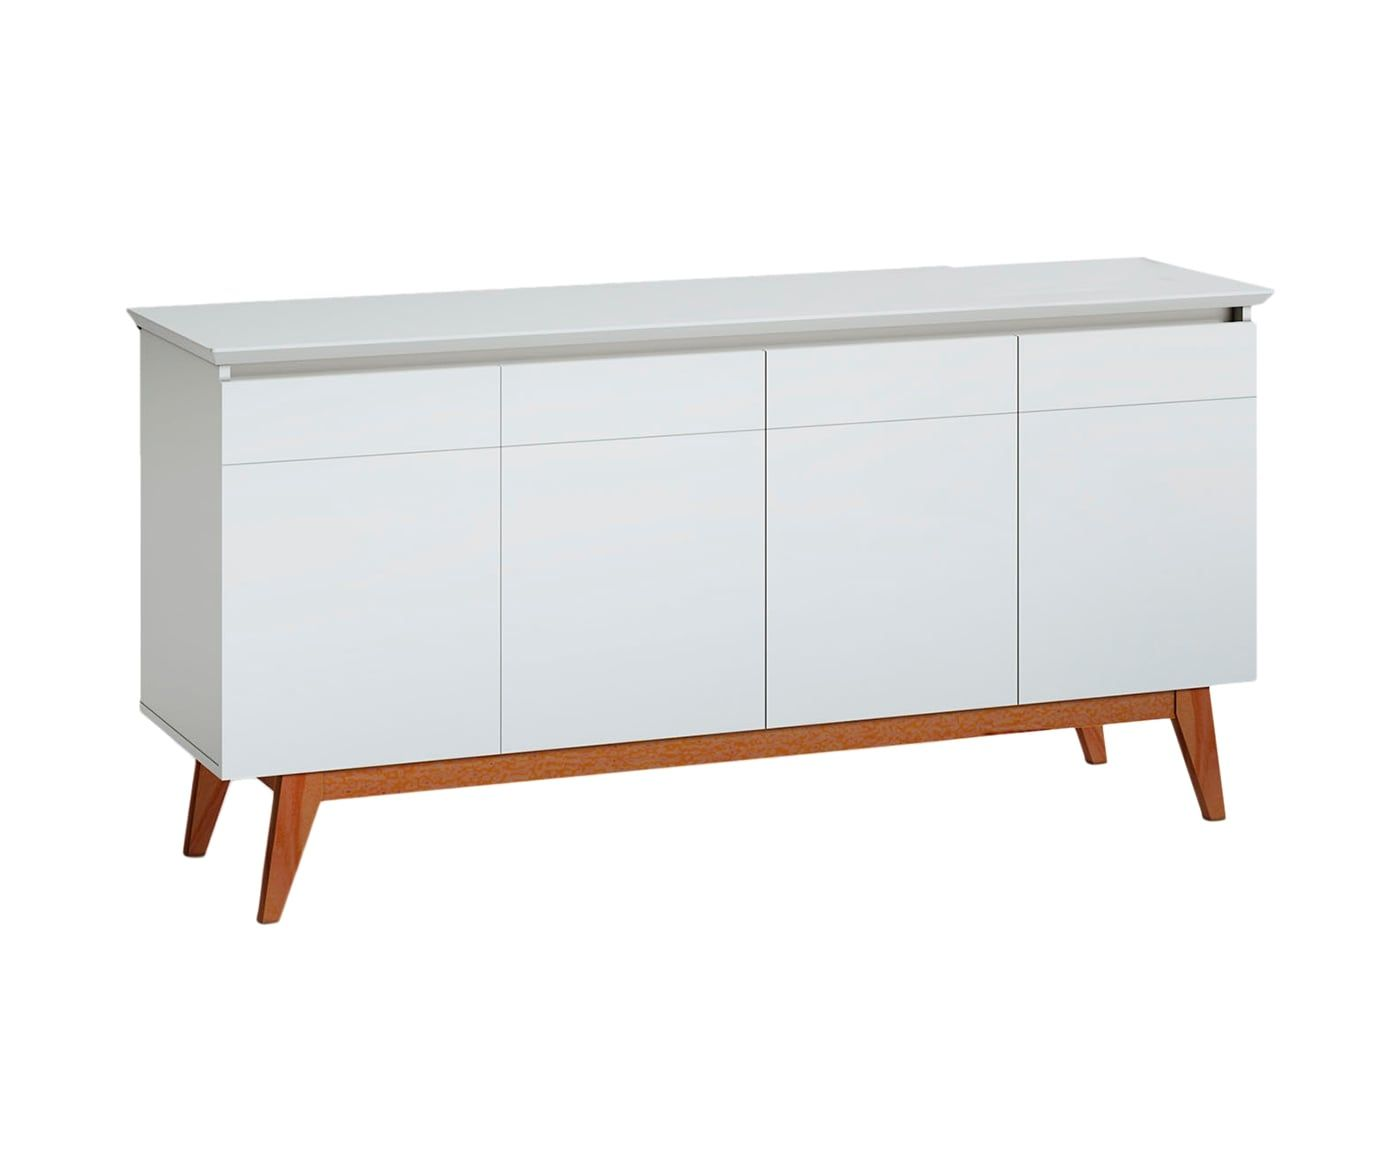 Buffet Classic Branco - 165X79cm | Westwing.com.br